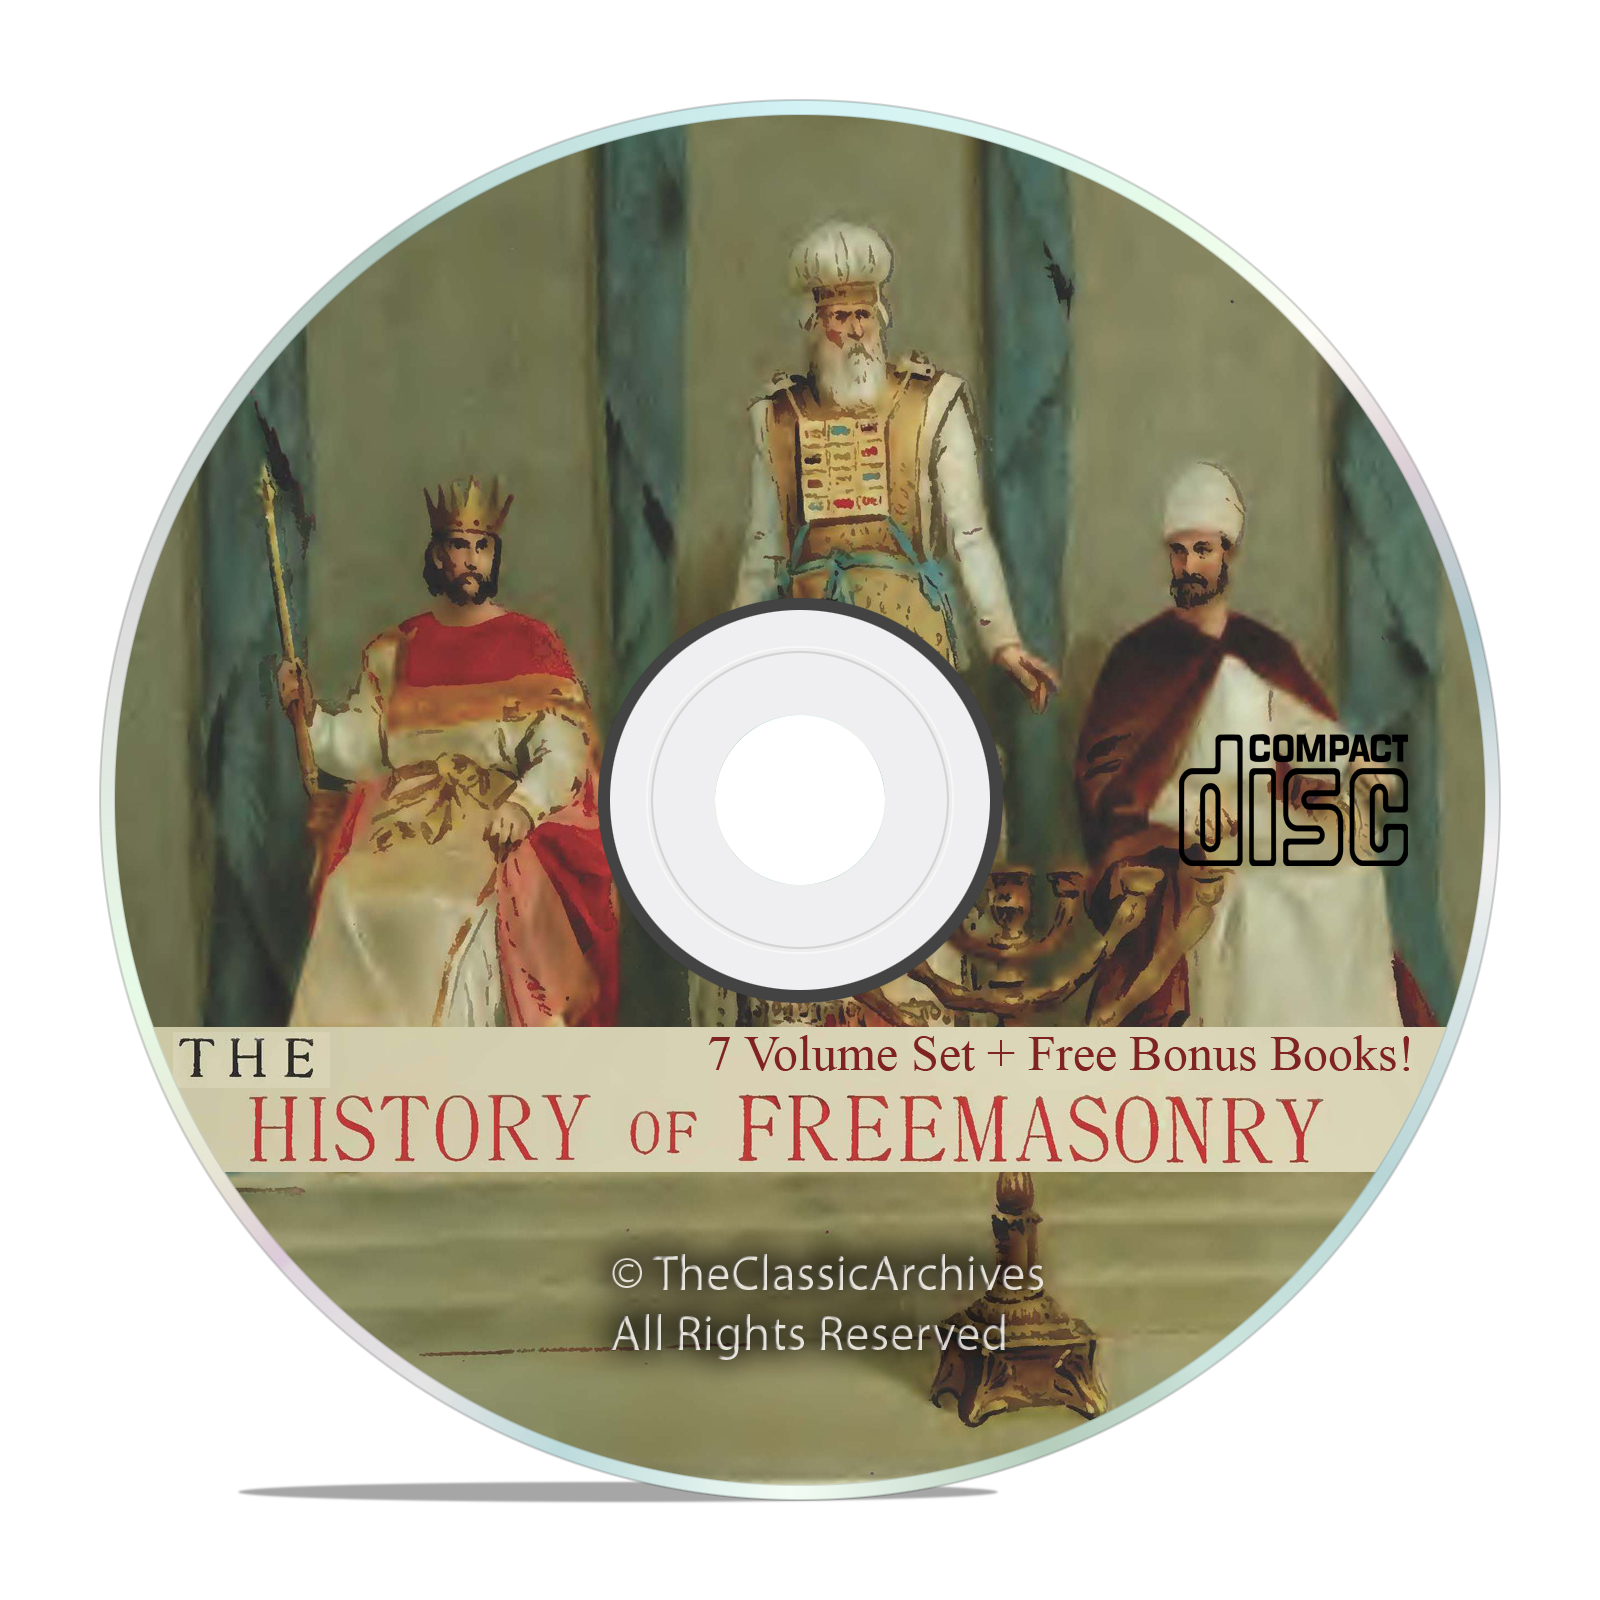 The History of Freemasonry, 7 Volumes, Freemason Lodge Arcane History on CD